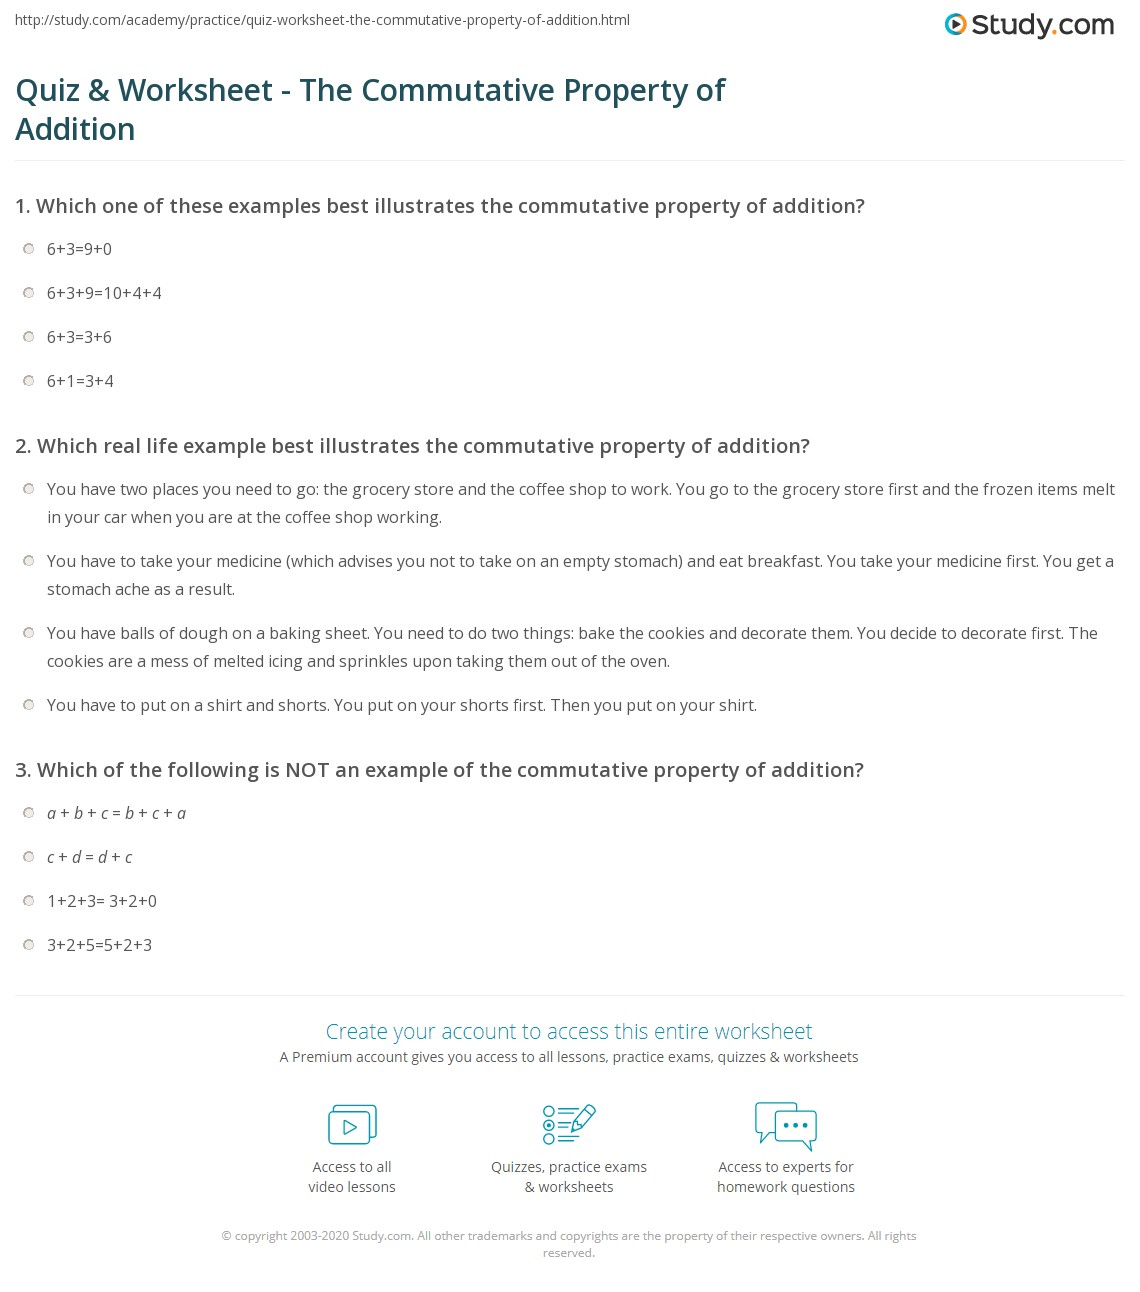 Quiz Worksheet The Commutative Property Of Addition Study